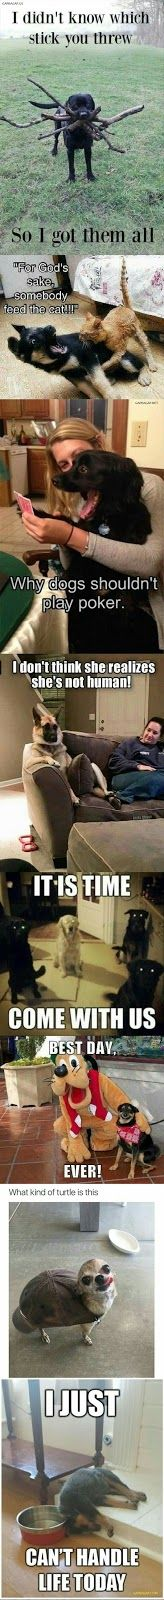 Top 8 Funniest Memes Of The Day ft. Funny Dogs (You'll see a couple Repeats from this page but that just means double grins!)